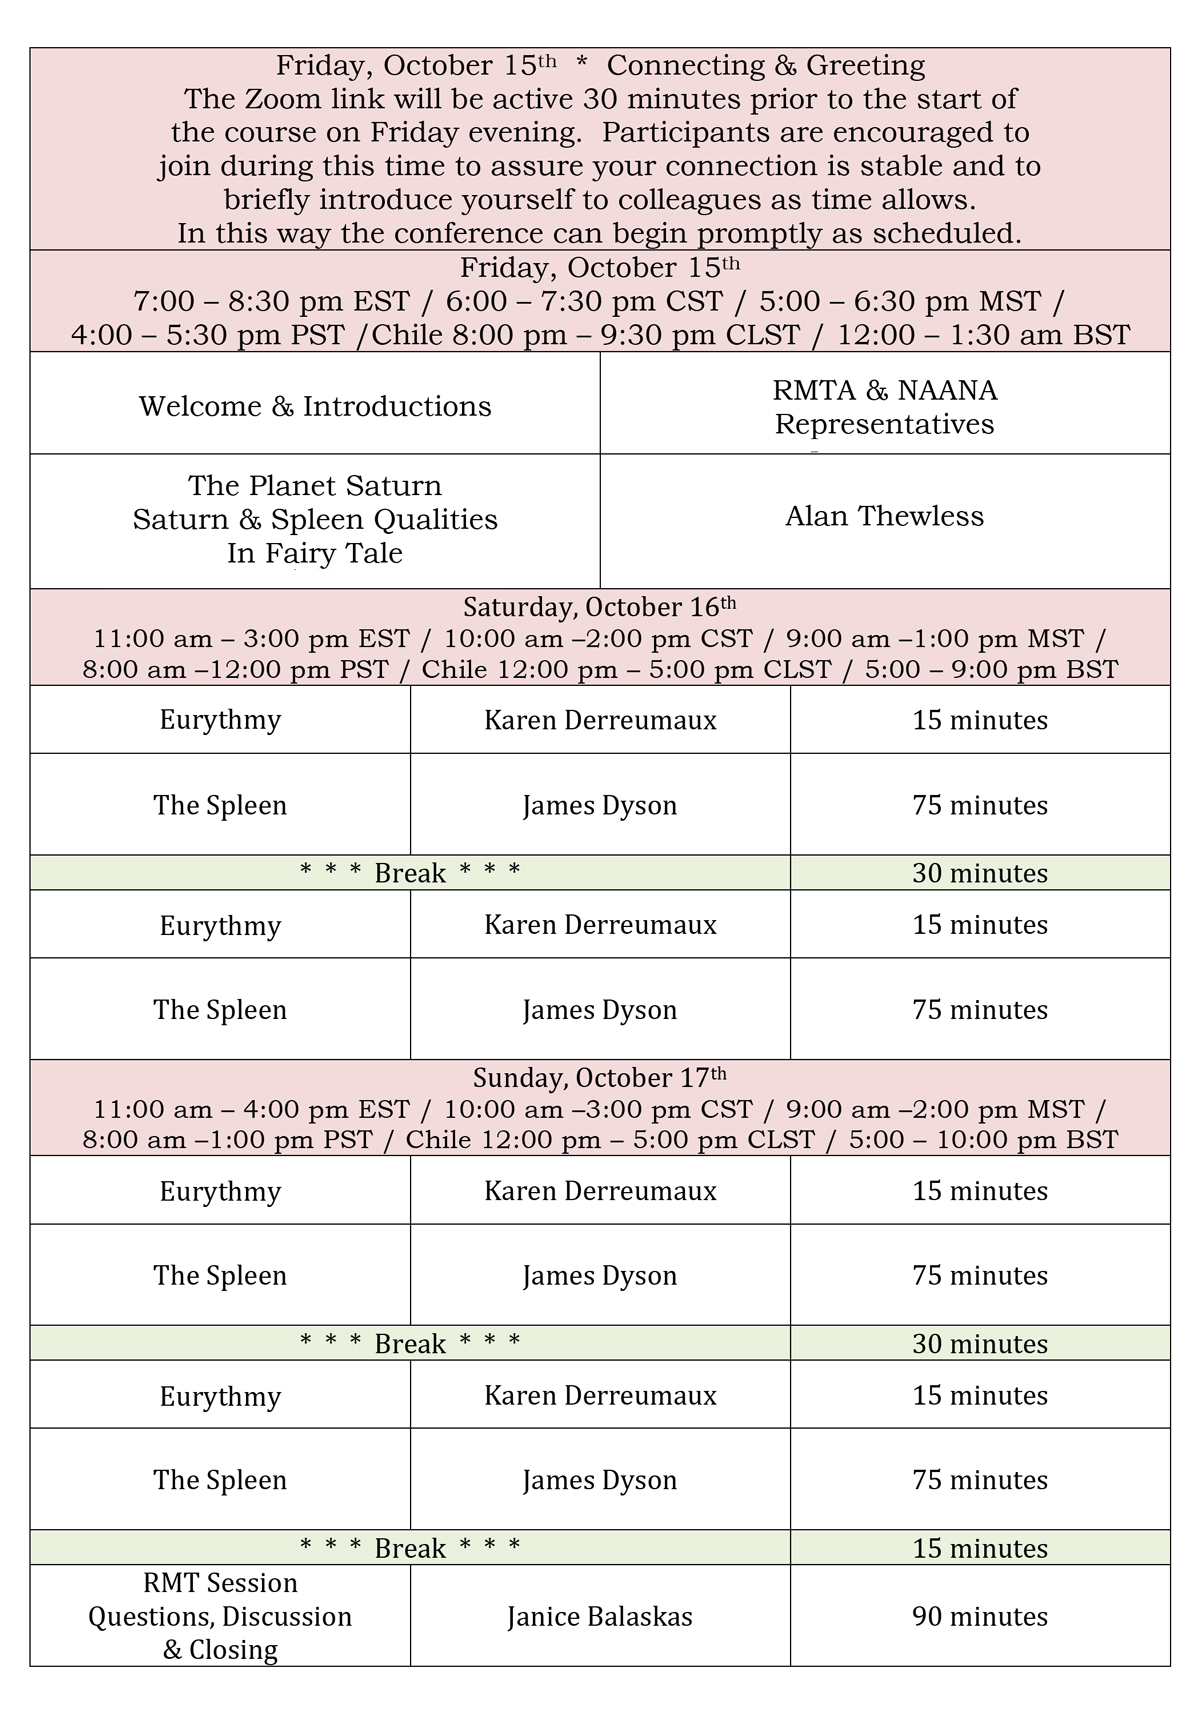 Rhythmical Massage Therapy of North America Saturn and Spleen Conference Schedule October 15-17-2021